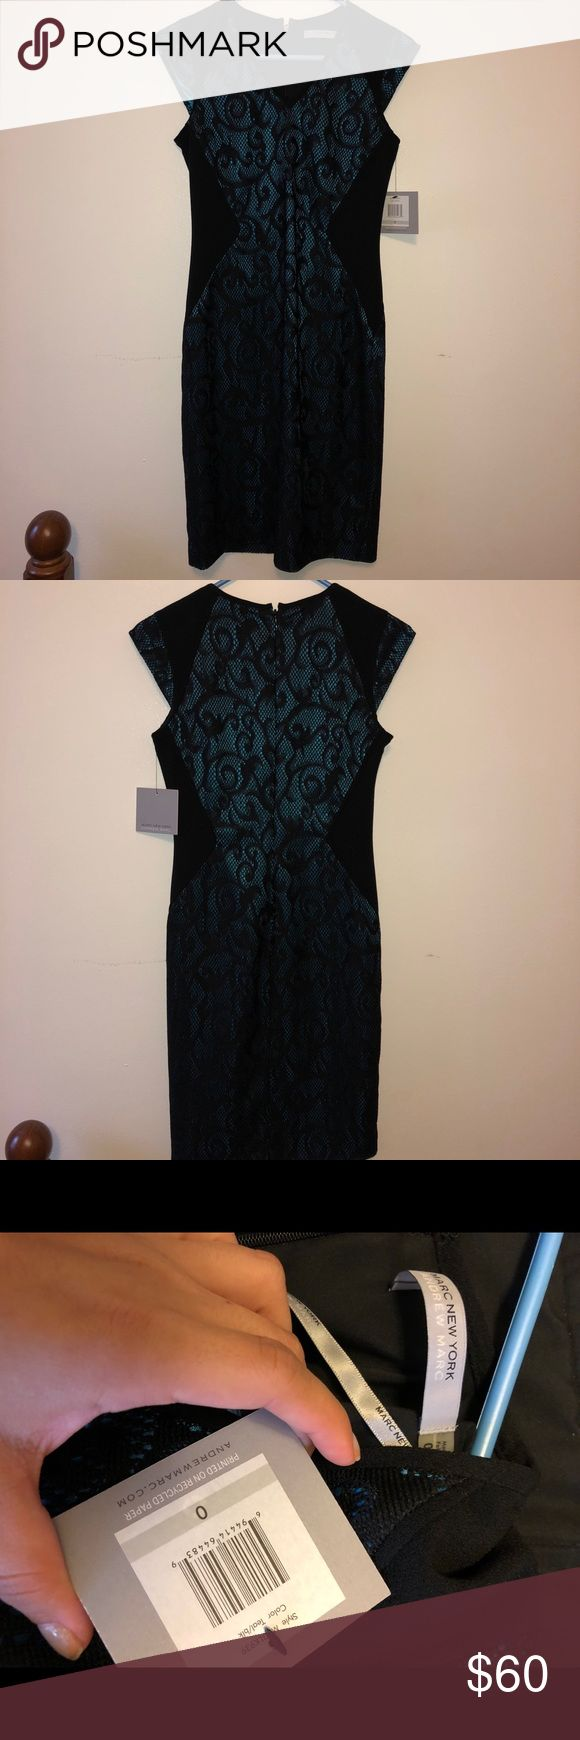 Marc New York Andrew Marc size 0 teal/black New with tags.Marc New York Andrew Marc teal/black short sleeved dress with a lacey design. Very flattering. Size 0 Andrew Marc Dresses Midi